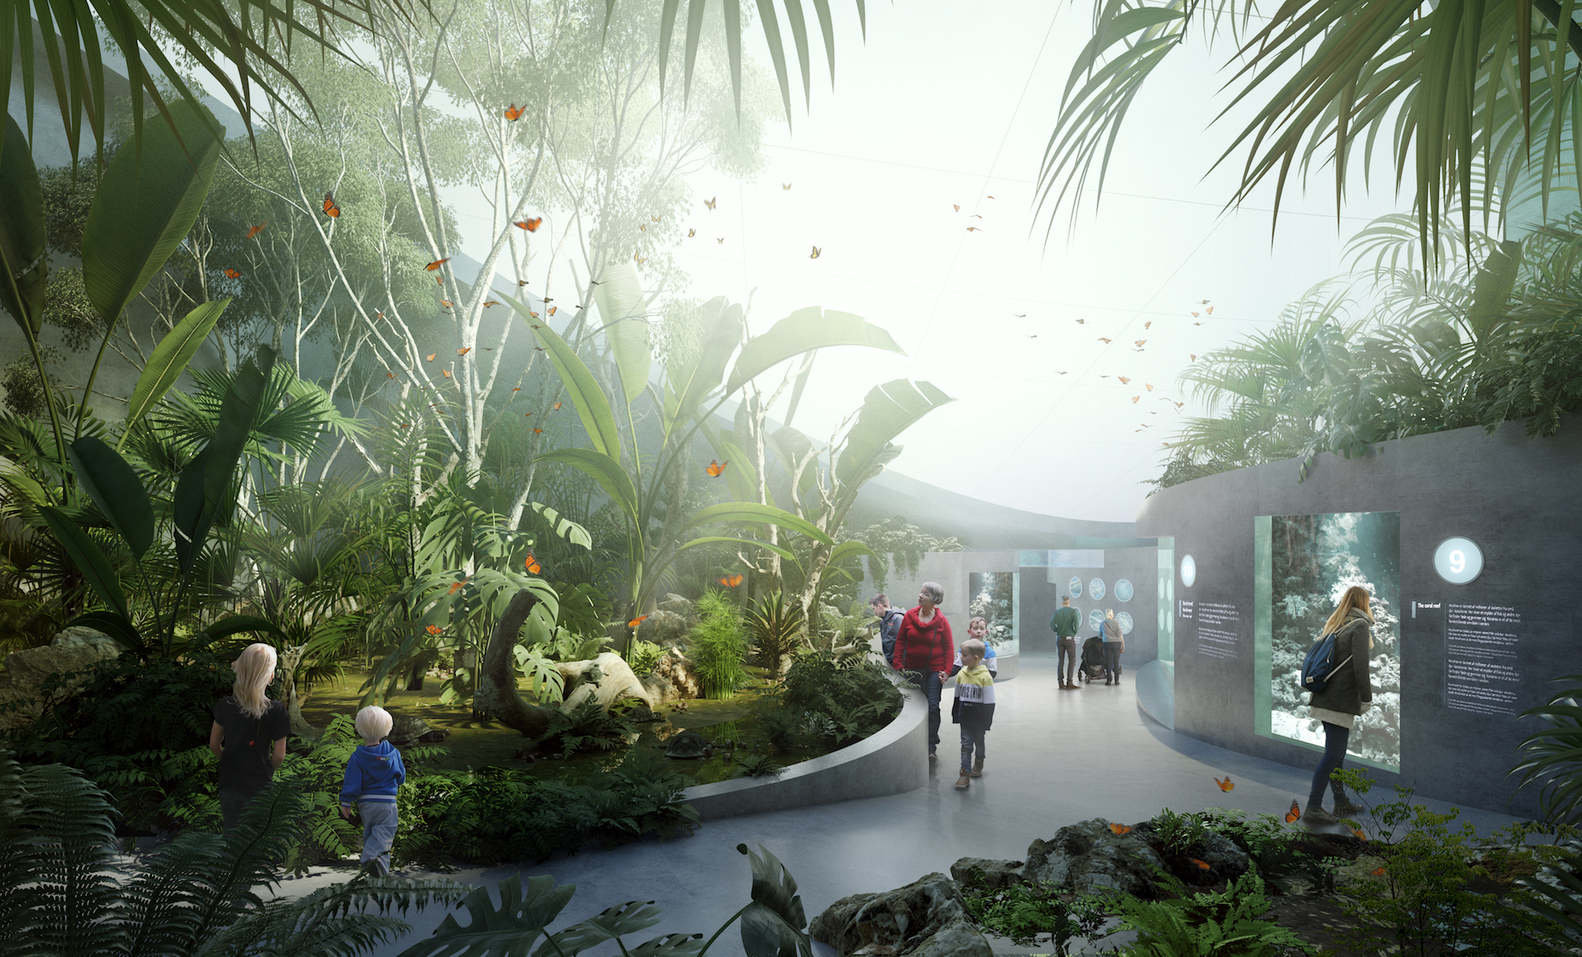 Aquarium_3XN_and_GERNER_GERNER_PLUS_IGS Magazine-4